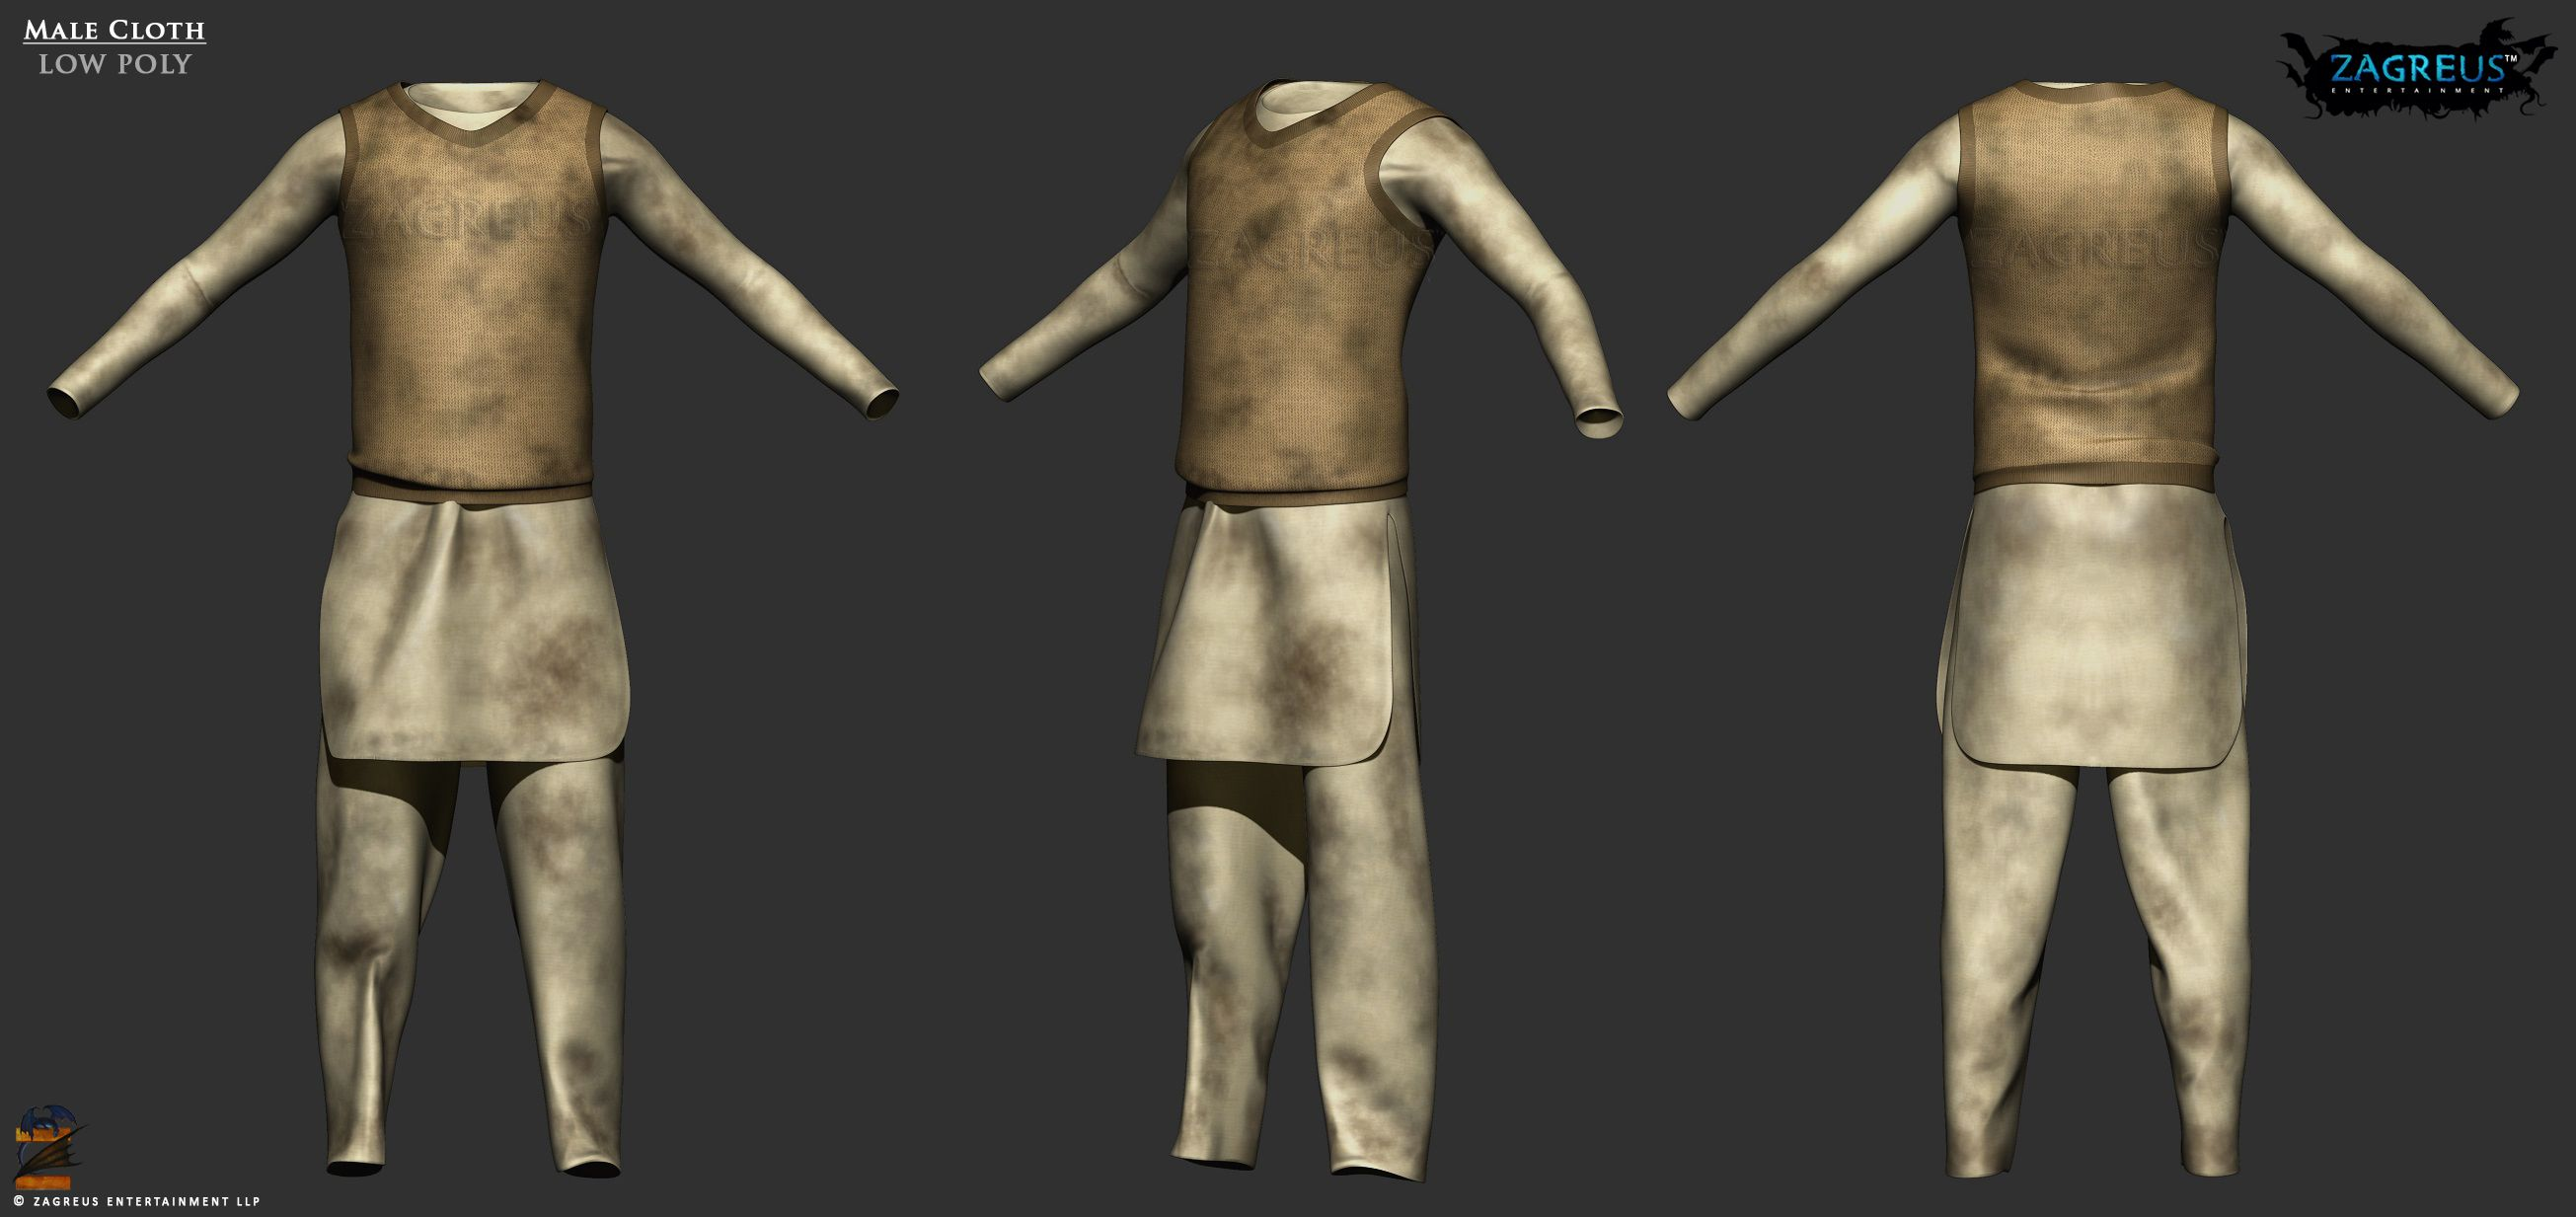 male_cloth_05_ze.jpg